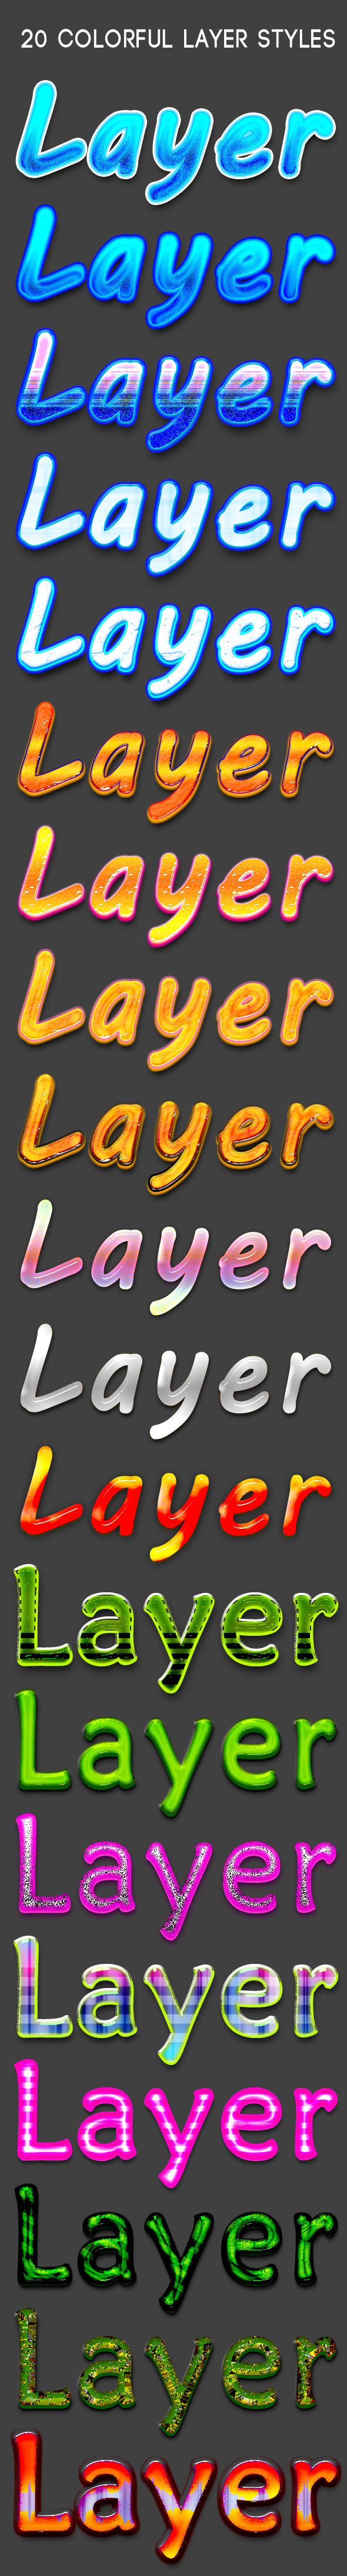 20 Colorful layer Styles - Text Effects Styles